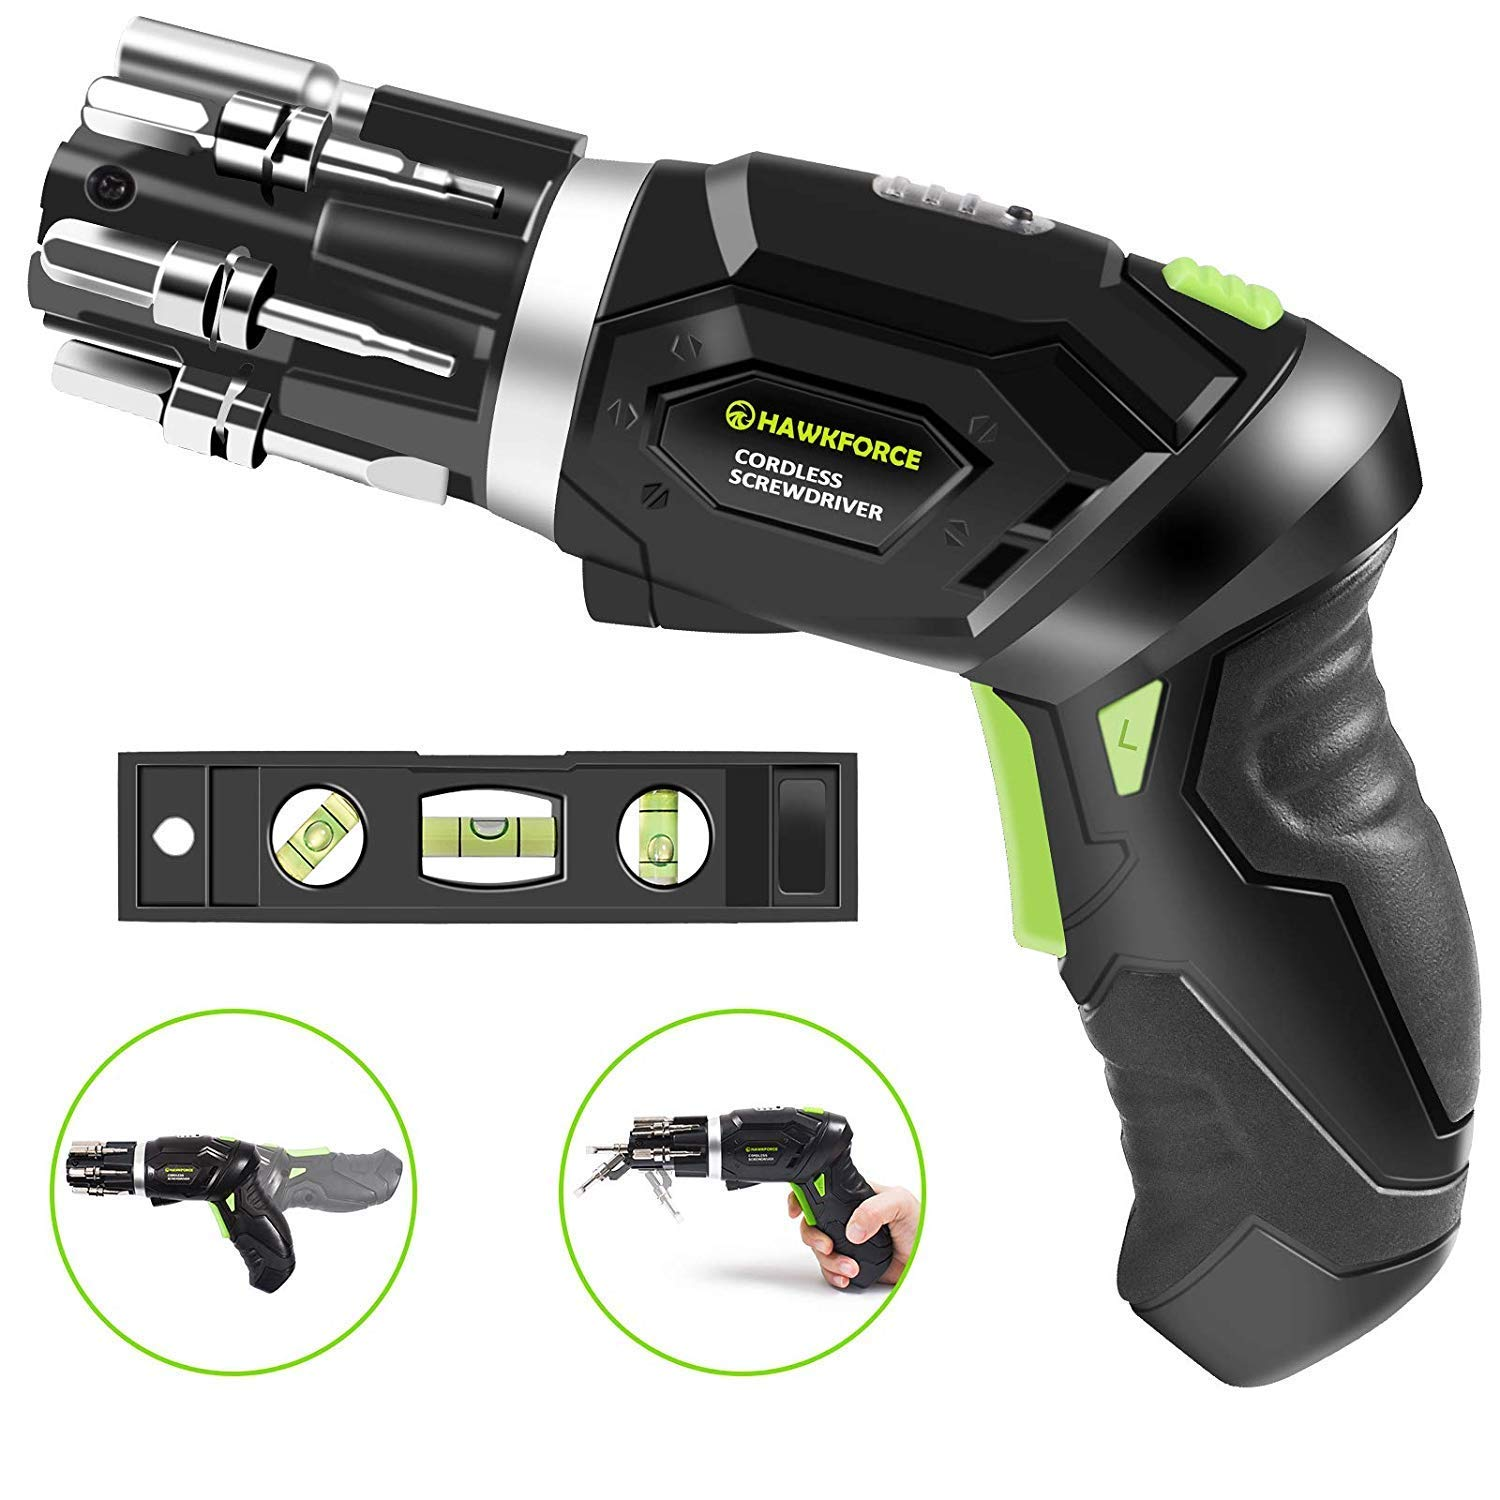 HAWKFORCE 3.5 N.m Power Screwdriver, 3.6V Electric Screwdriver - Flexible Pivoting Head - Adjustable 2 Position Handle - Front LED Light Cordless Screwdriver with Bubble Level